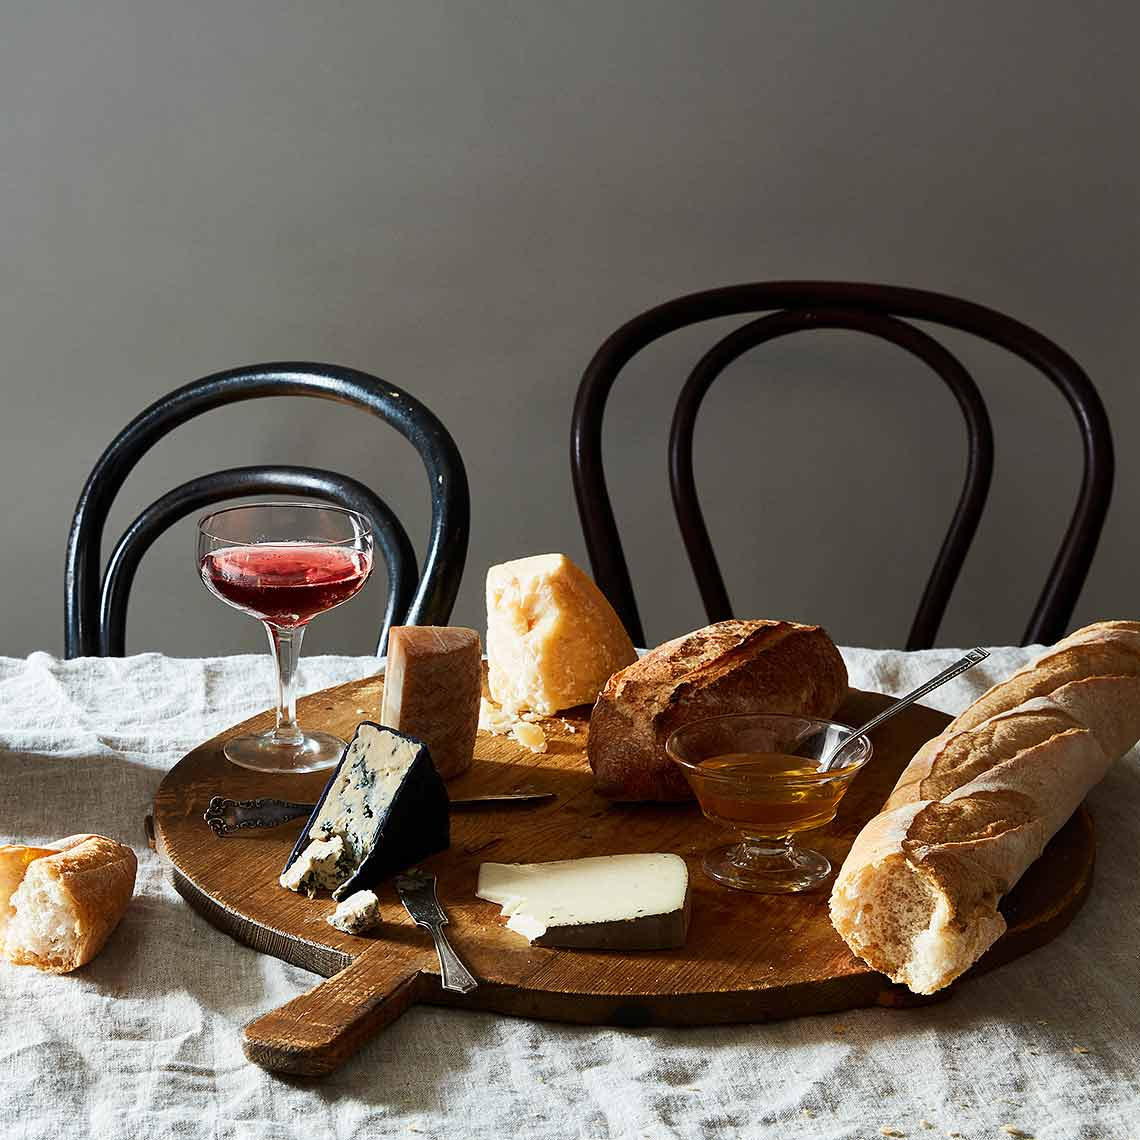 2016-0721_food52-vintage-shop_vintage-round-bread-board_mid_james-ransom-182